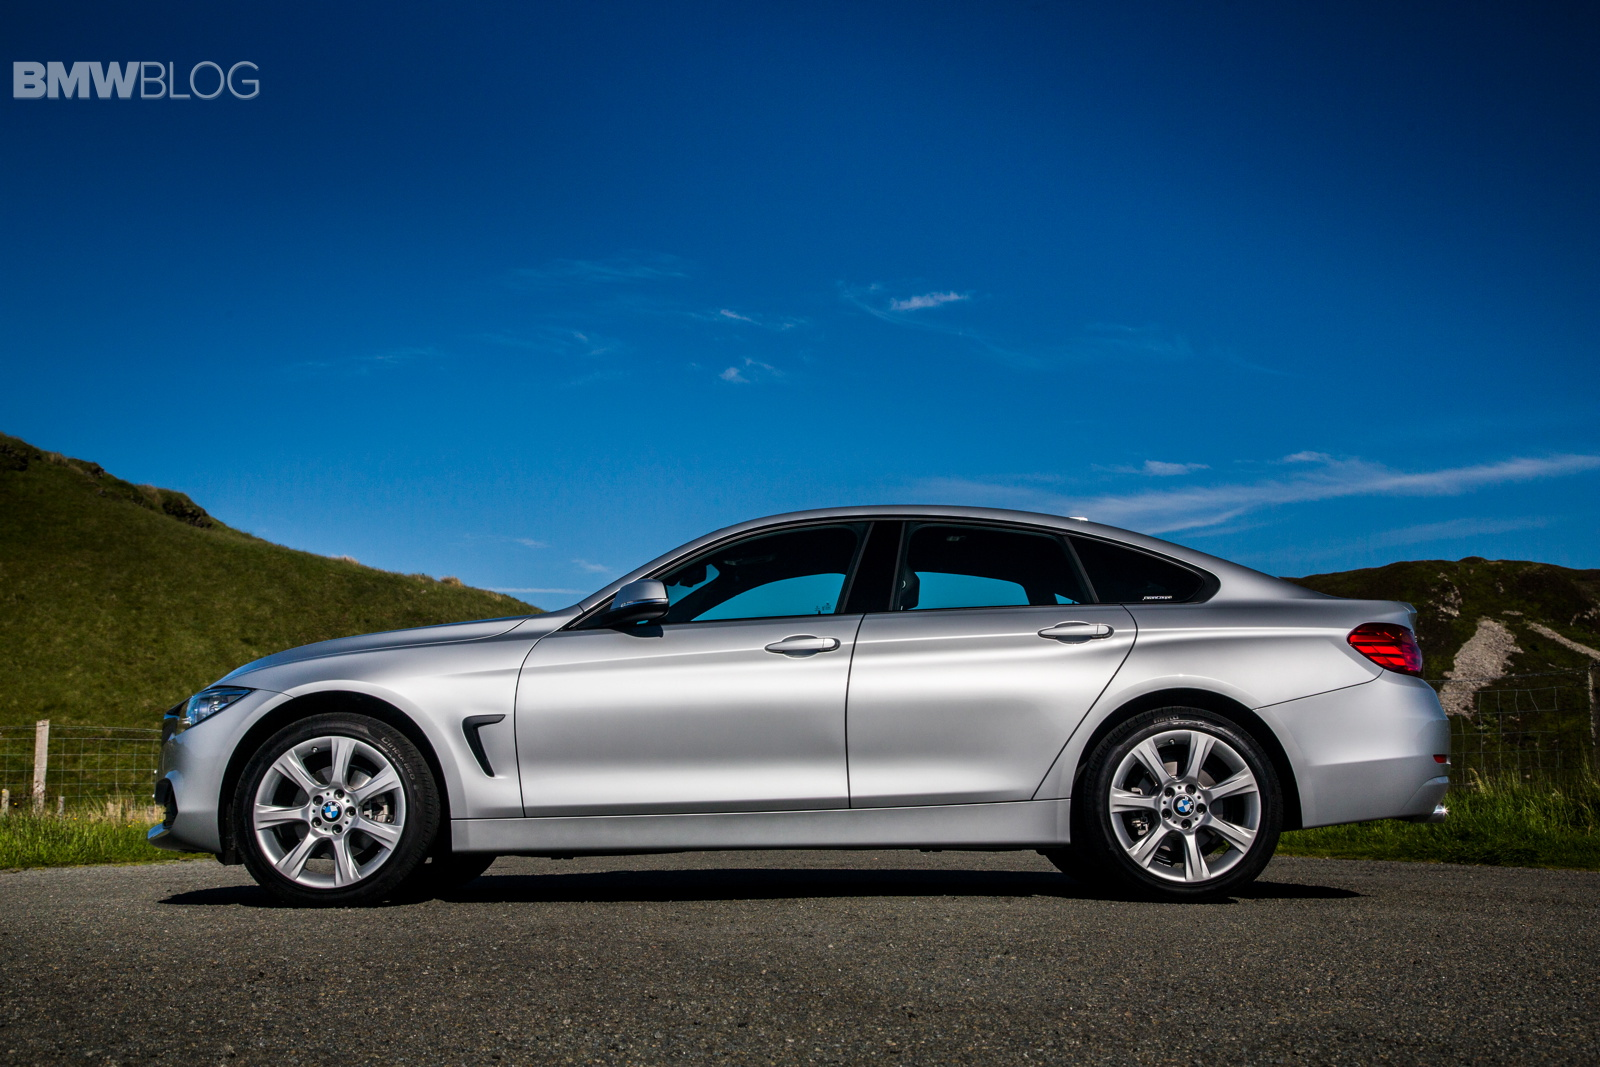 2015 Bmw 4 Series Gran Coupe Photo Gallery